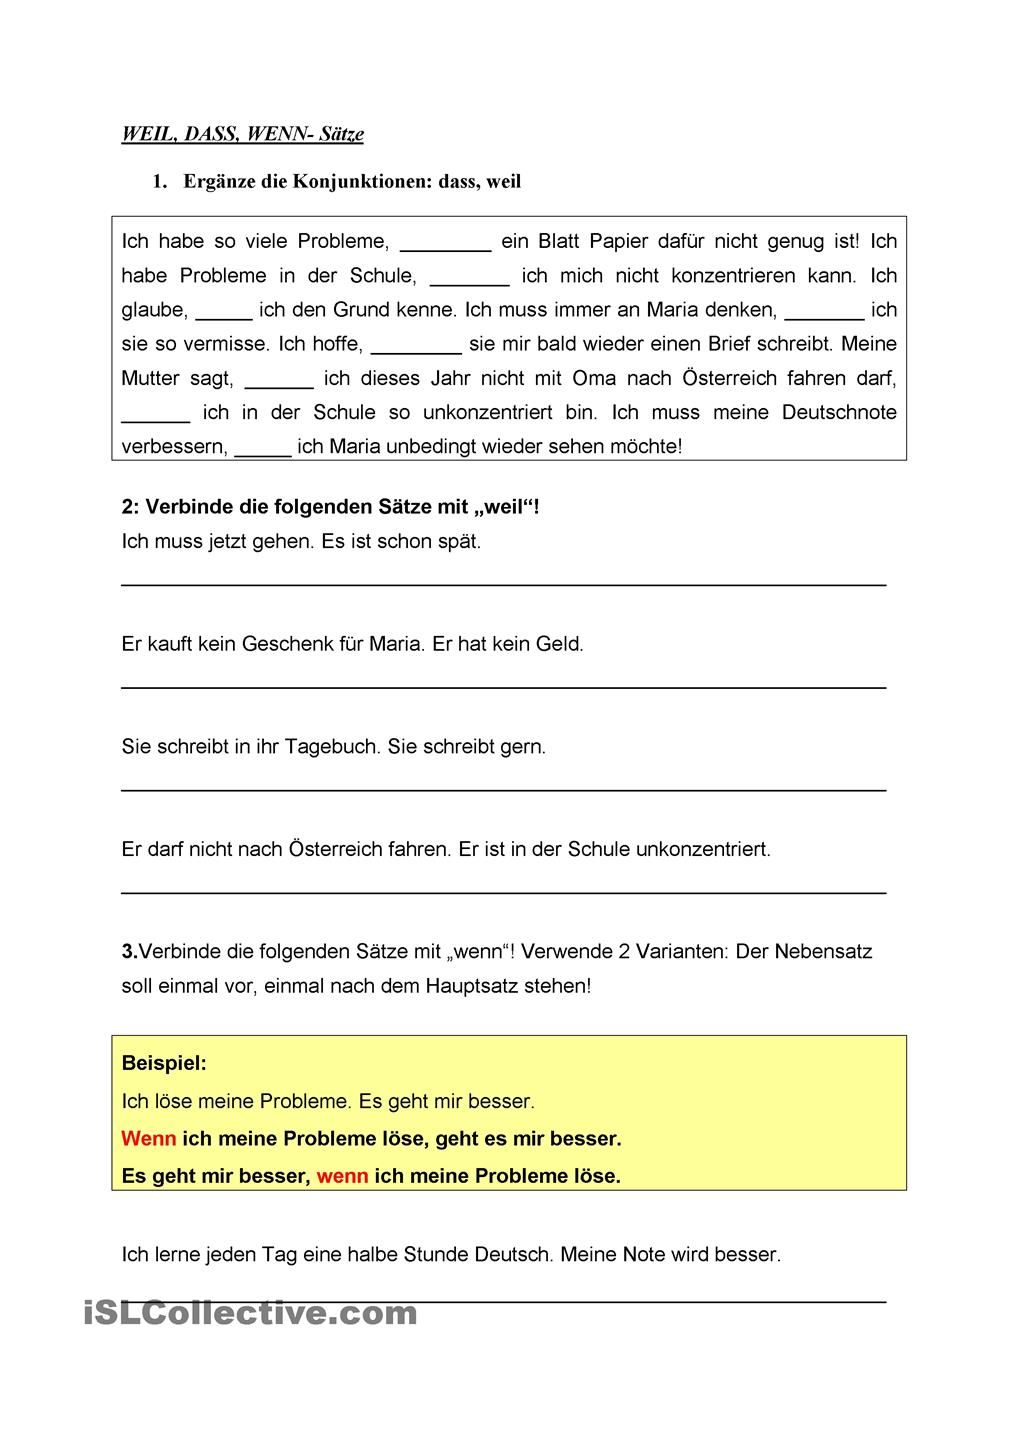 arbeitsblatt | Bildung | Pinterest | Printable worksheets and Worksheets